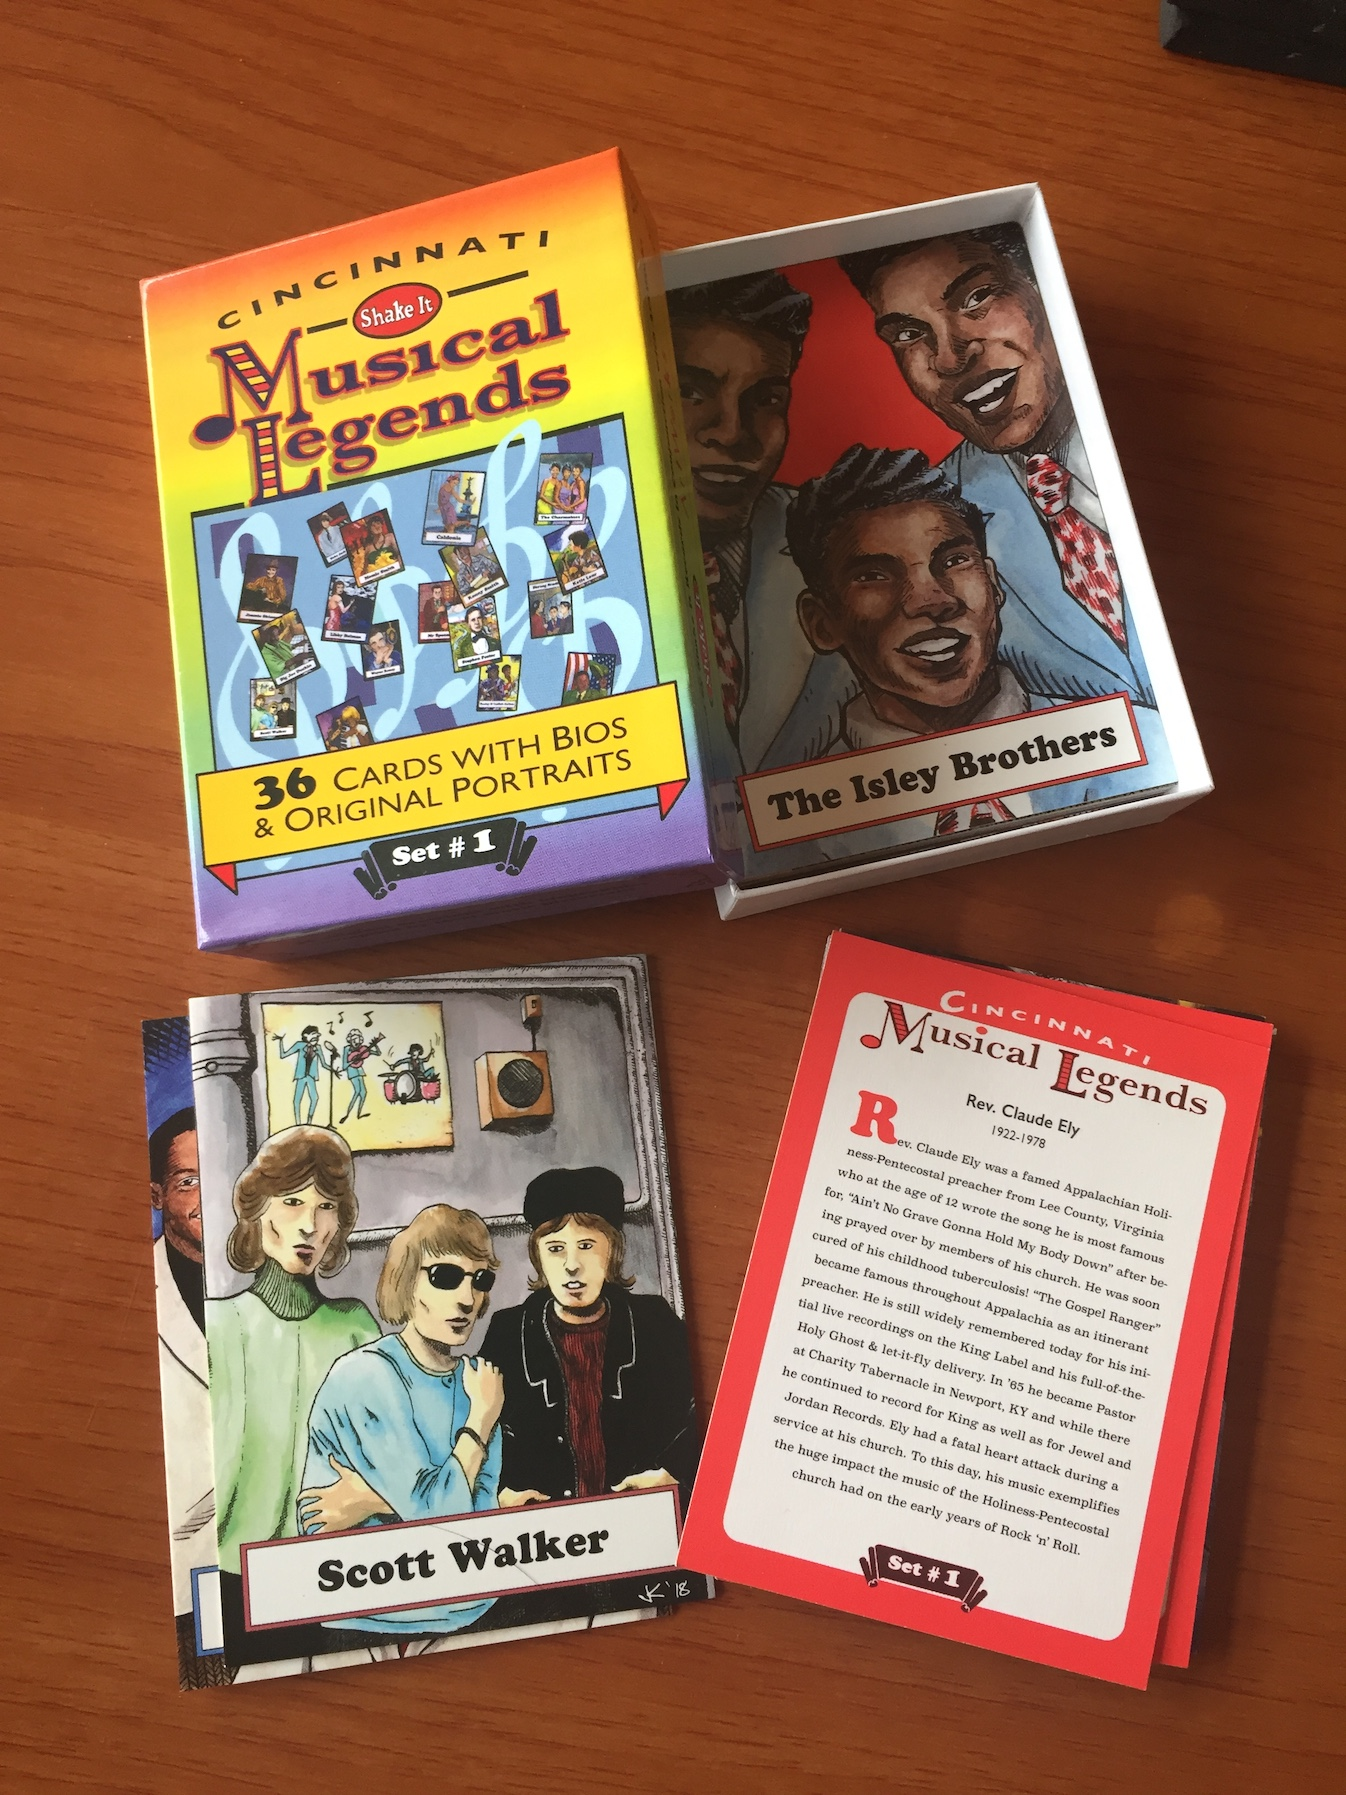 ShakeIt Records new Cincinnati Musical Legends trading cards